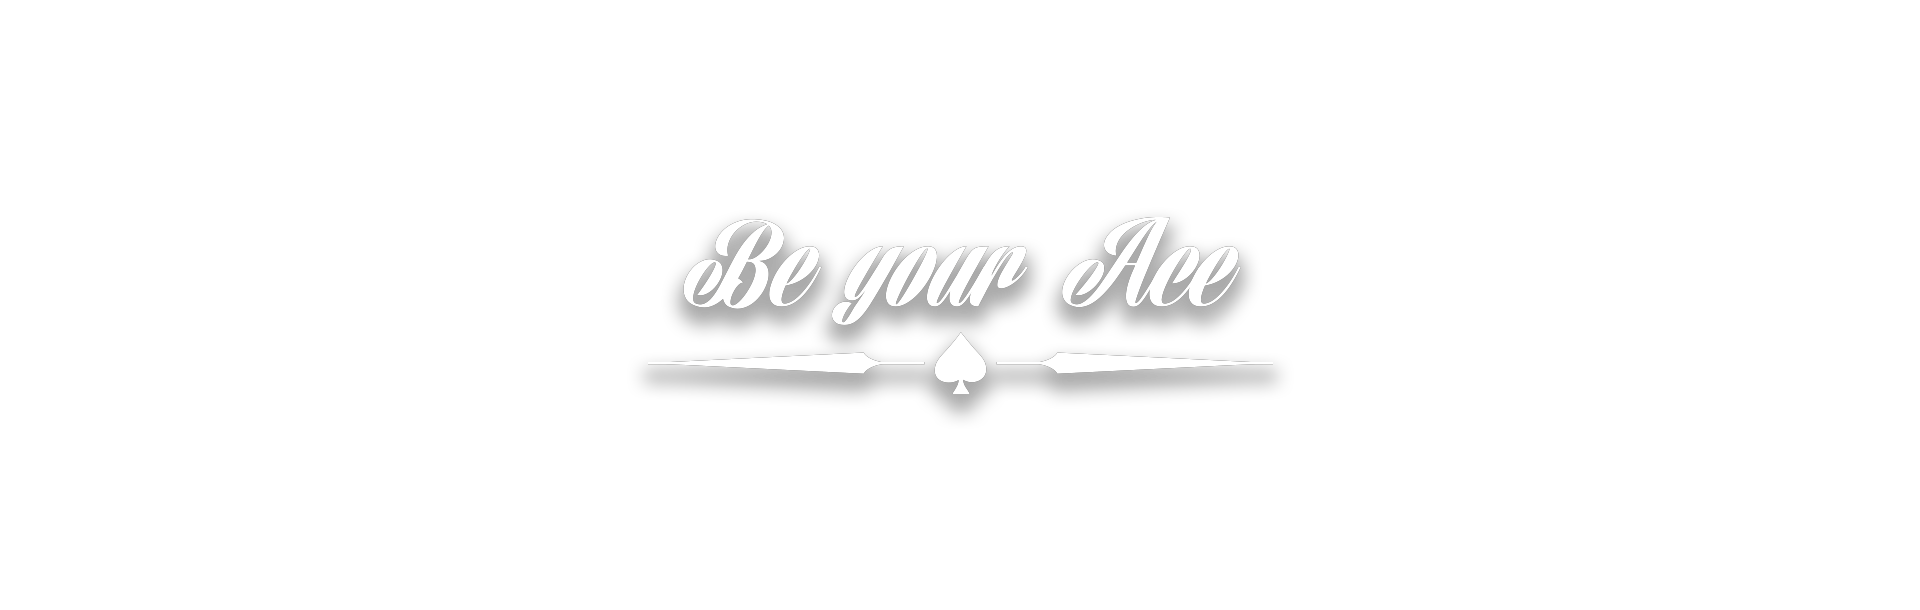 be your ace